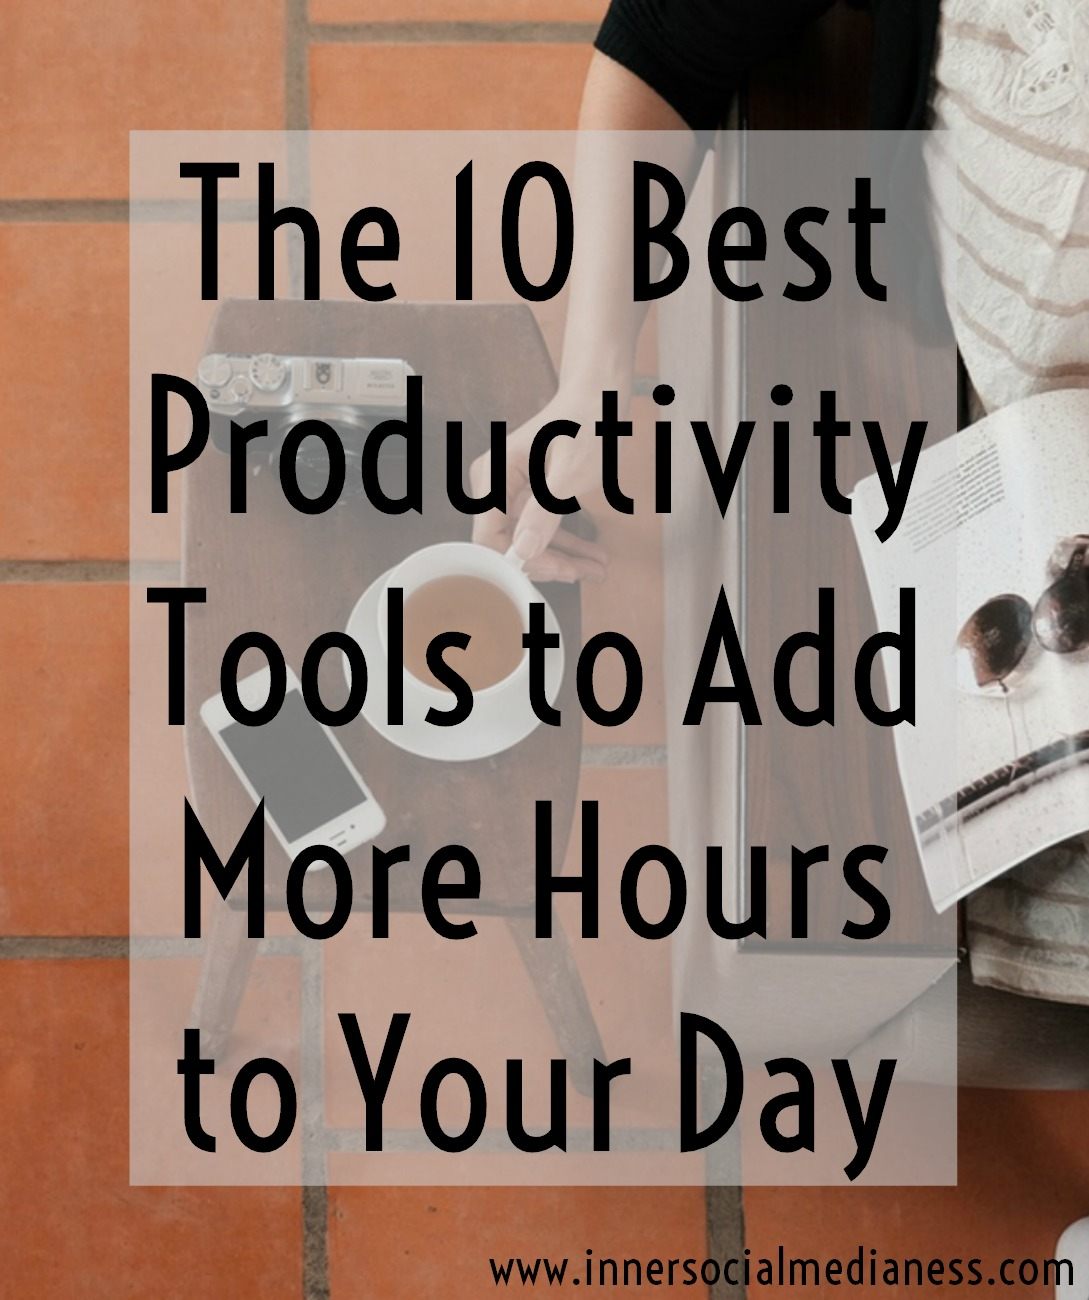 The 10 Best Productivity Tools to Add More Hours to Your Day - One of the best things I've learned to grow my business is to figure out how to get more done in less time. It's more than just scheduling things in your calendar. It's more about finding programs that you can use both on your computer and your mobile devices.